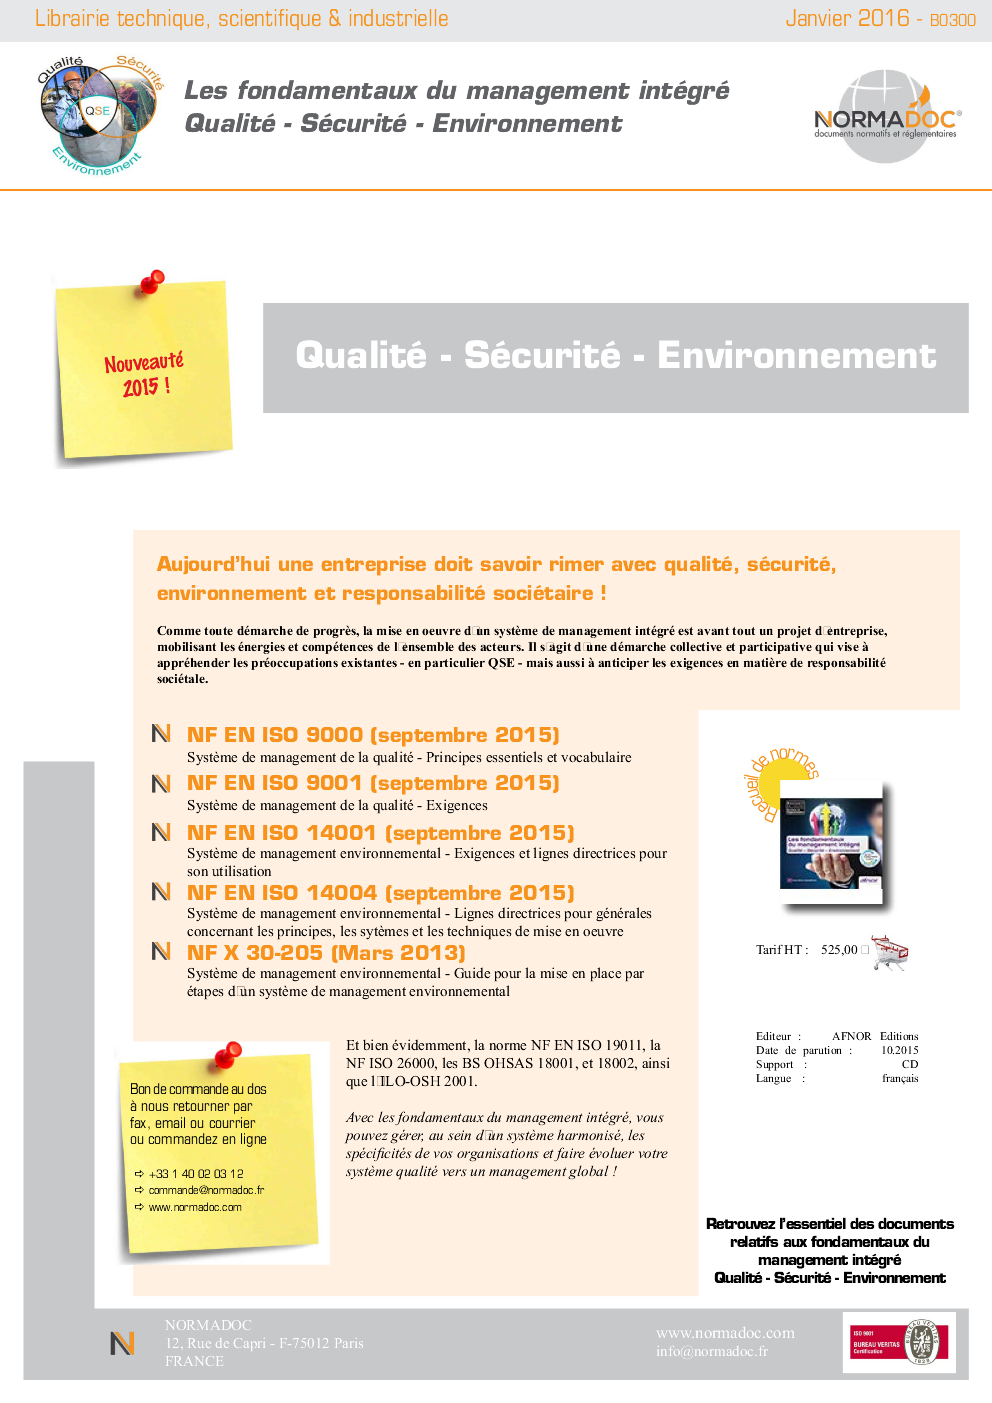 Quality - Security - Environment